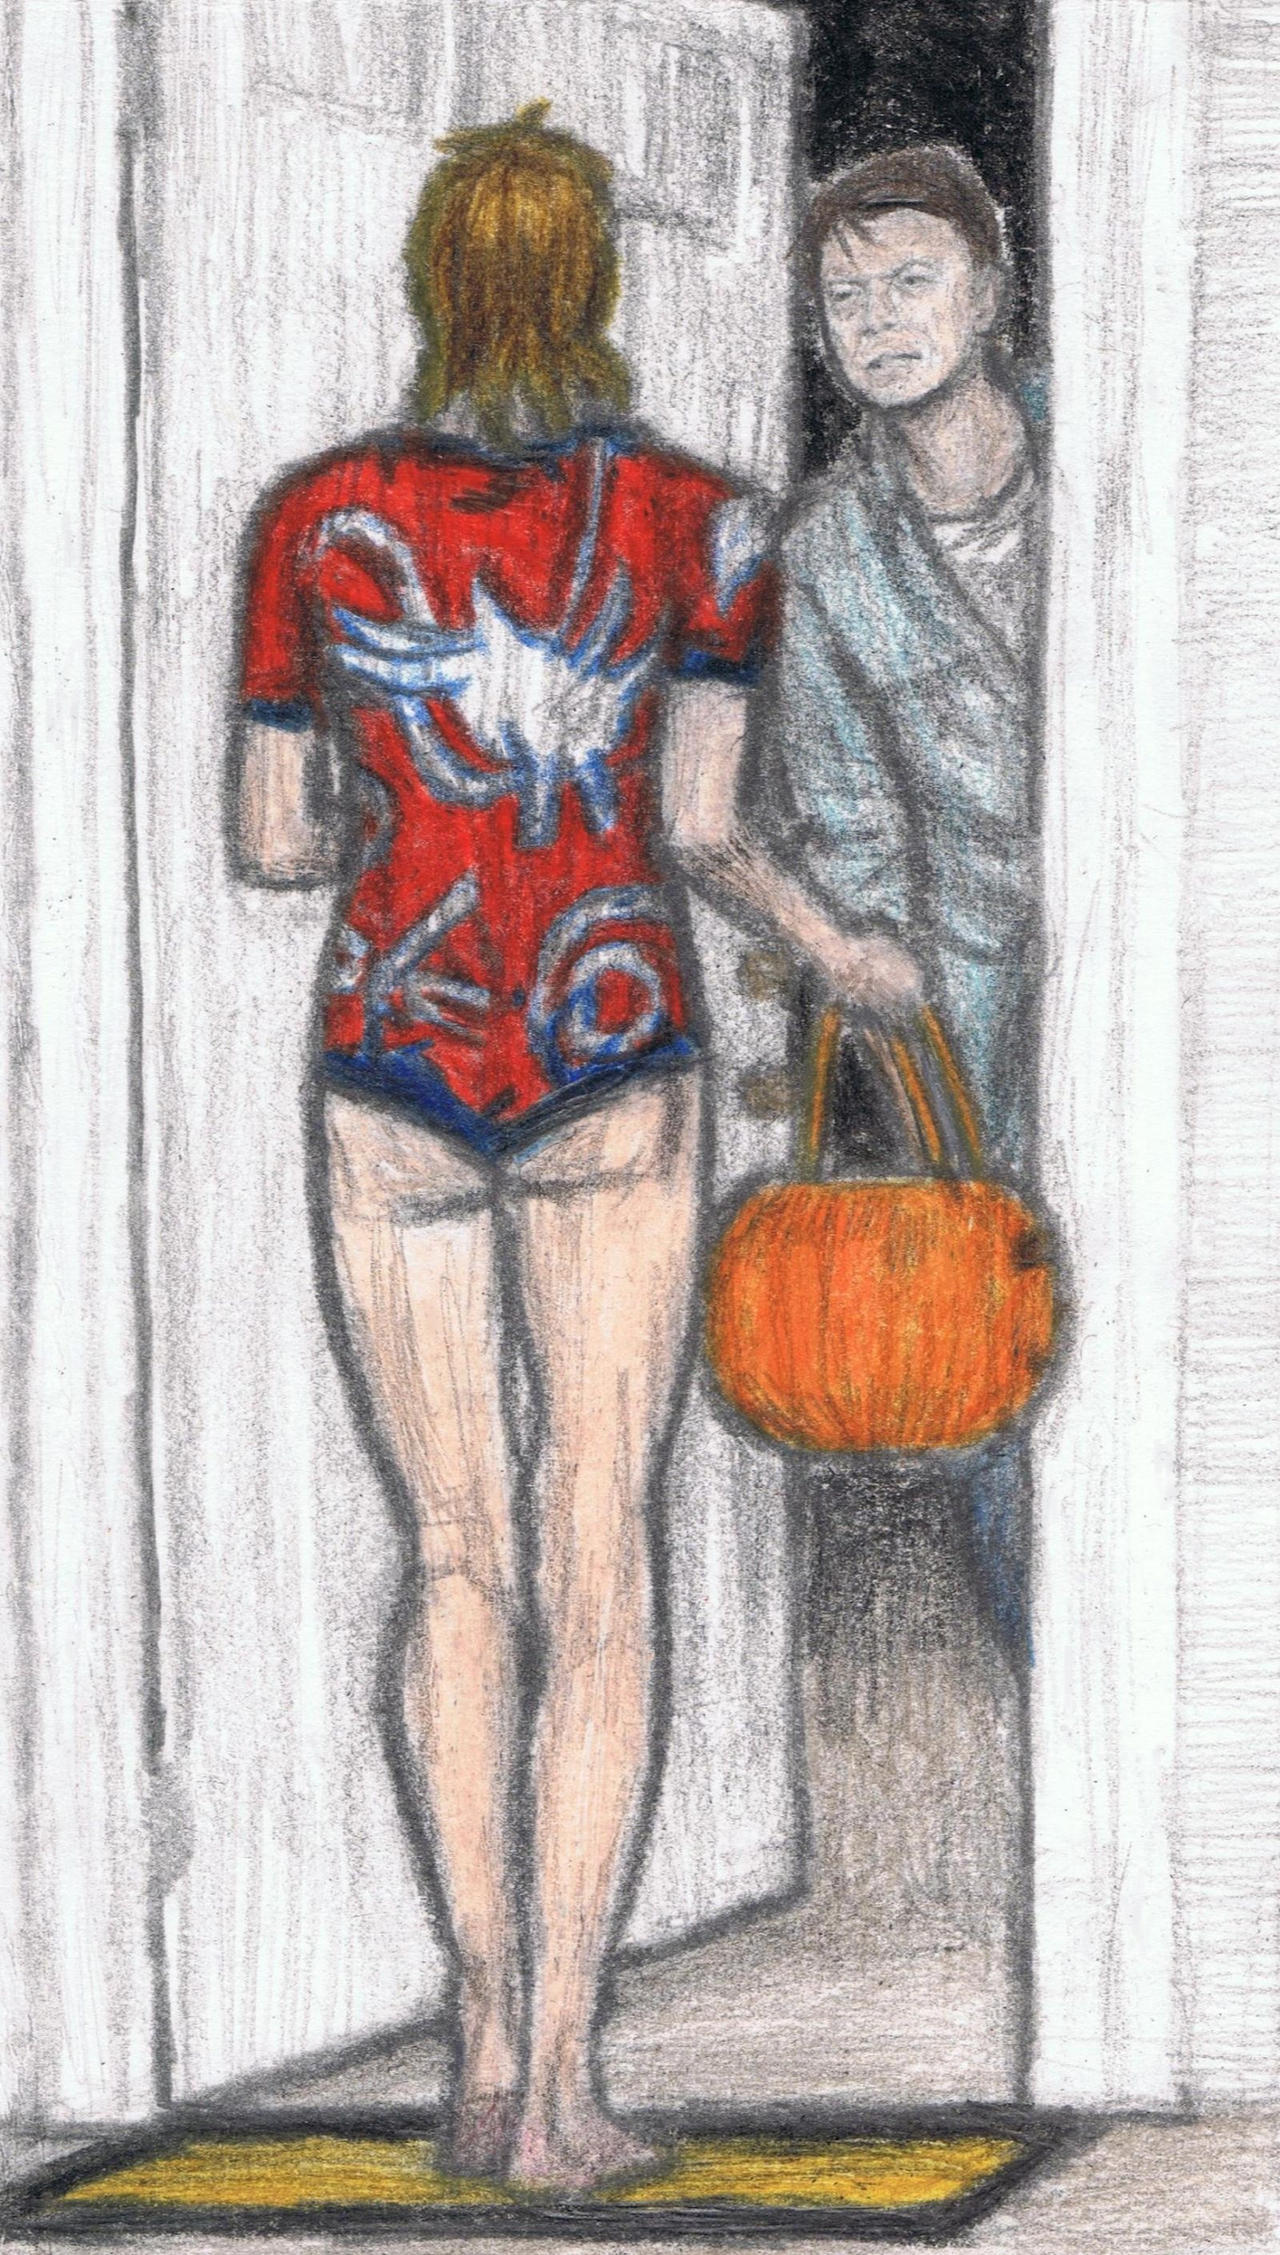 Ziggy Stardust trick-or-treating by gagambo